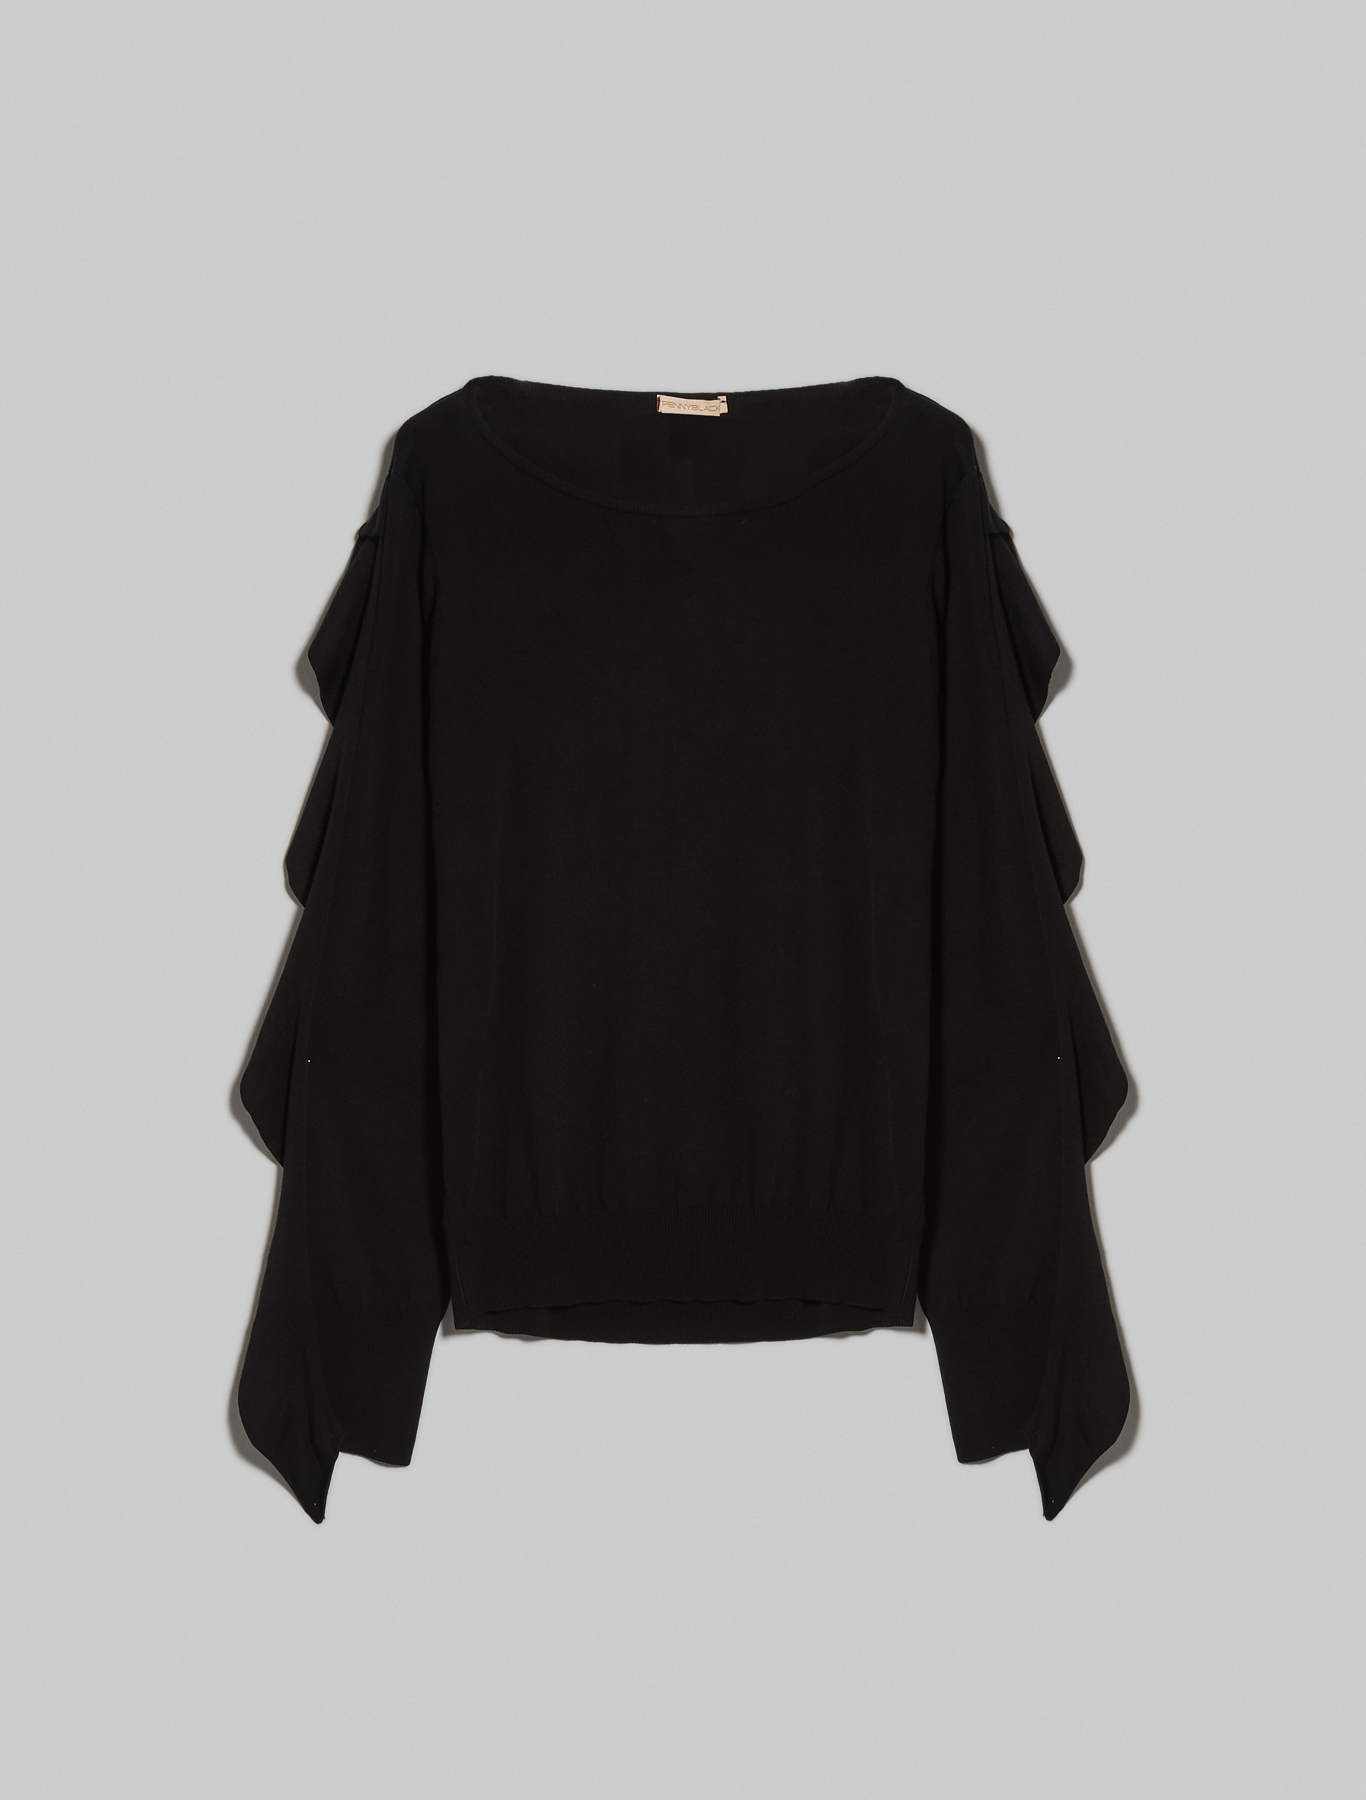 Jumper with ruffles - black - pennyblack